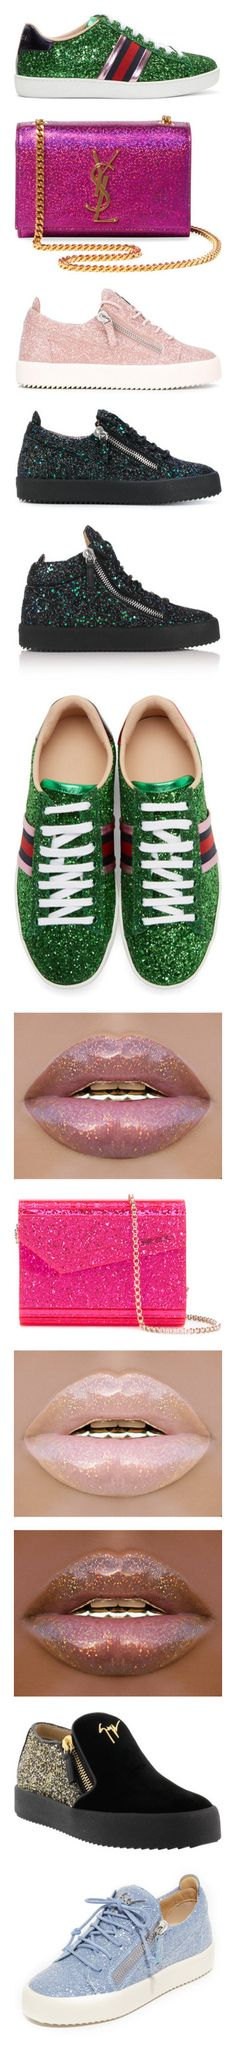 """✨G L I T T R✨"" by mykailll ❤ liked on Polyvore featuring shoes, sneakers, green, metallic sneakers, lacing sneakers, lace up shoes, glitter sneakers, round cap, bags and handbags"